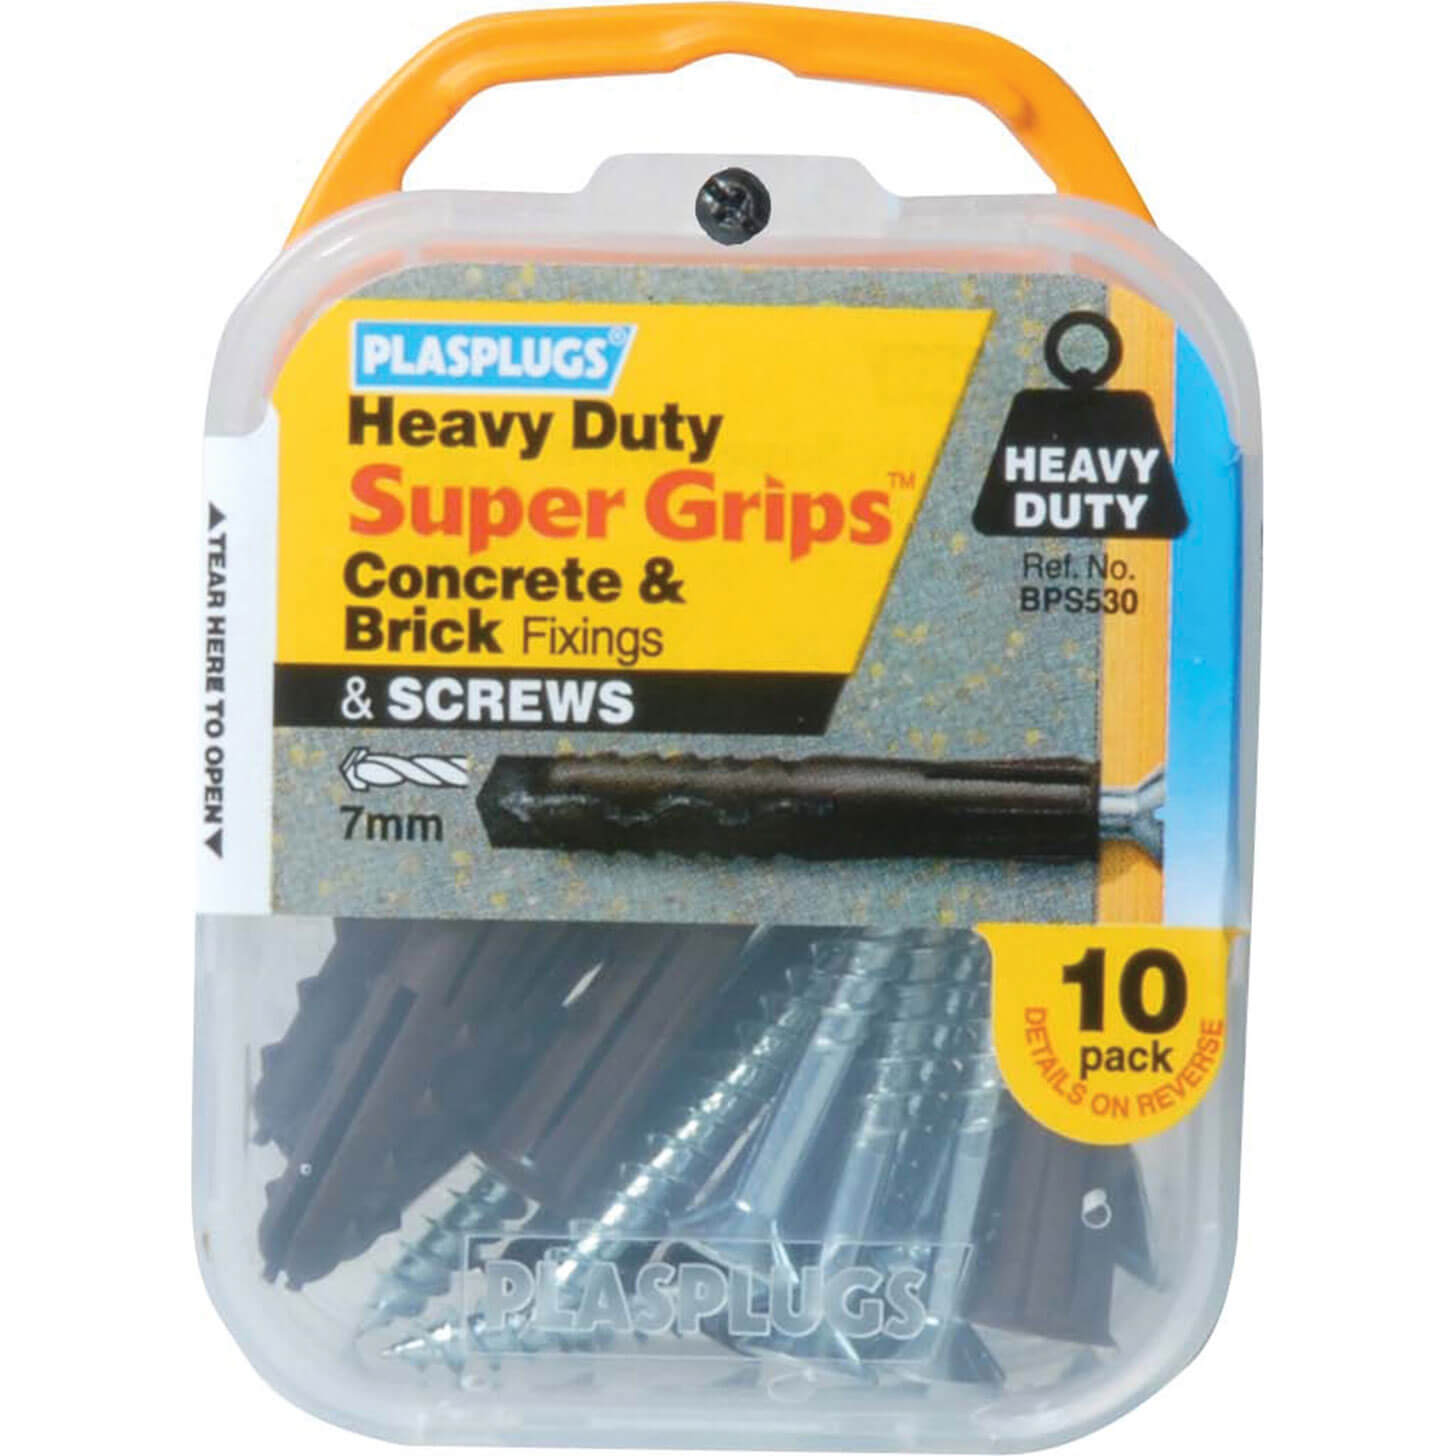 Image of Plasplugs Heavy Duty Super Grips Concrete & Brick Fixings Pack of 10